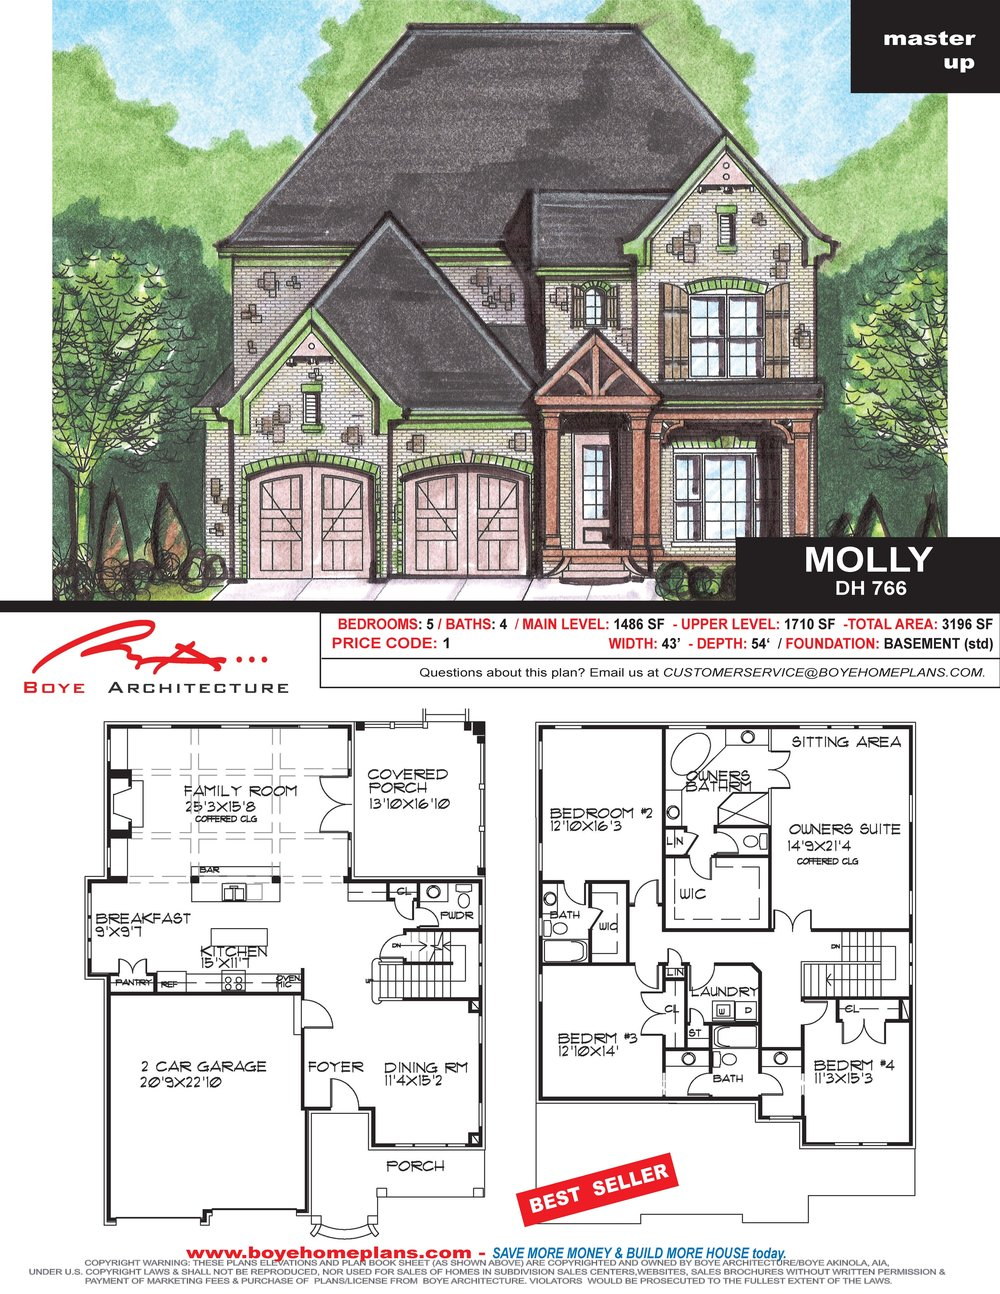 MOLLY PLAN PAGE-DH 766-092316.jpg